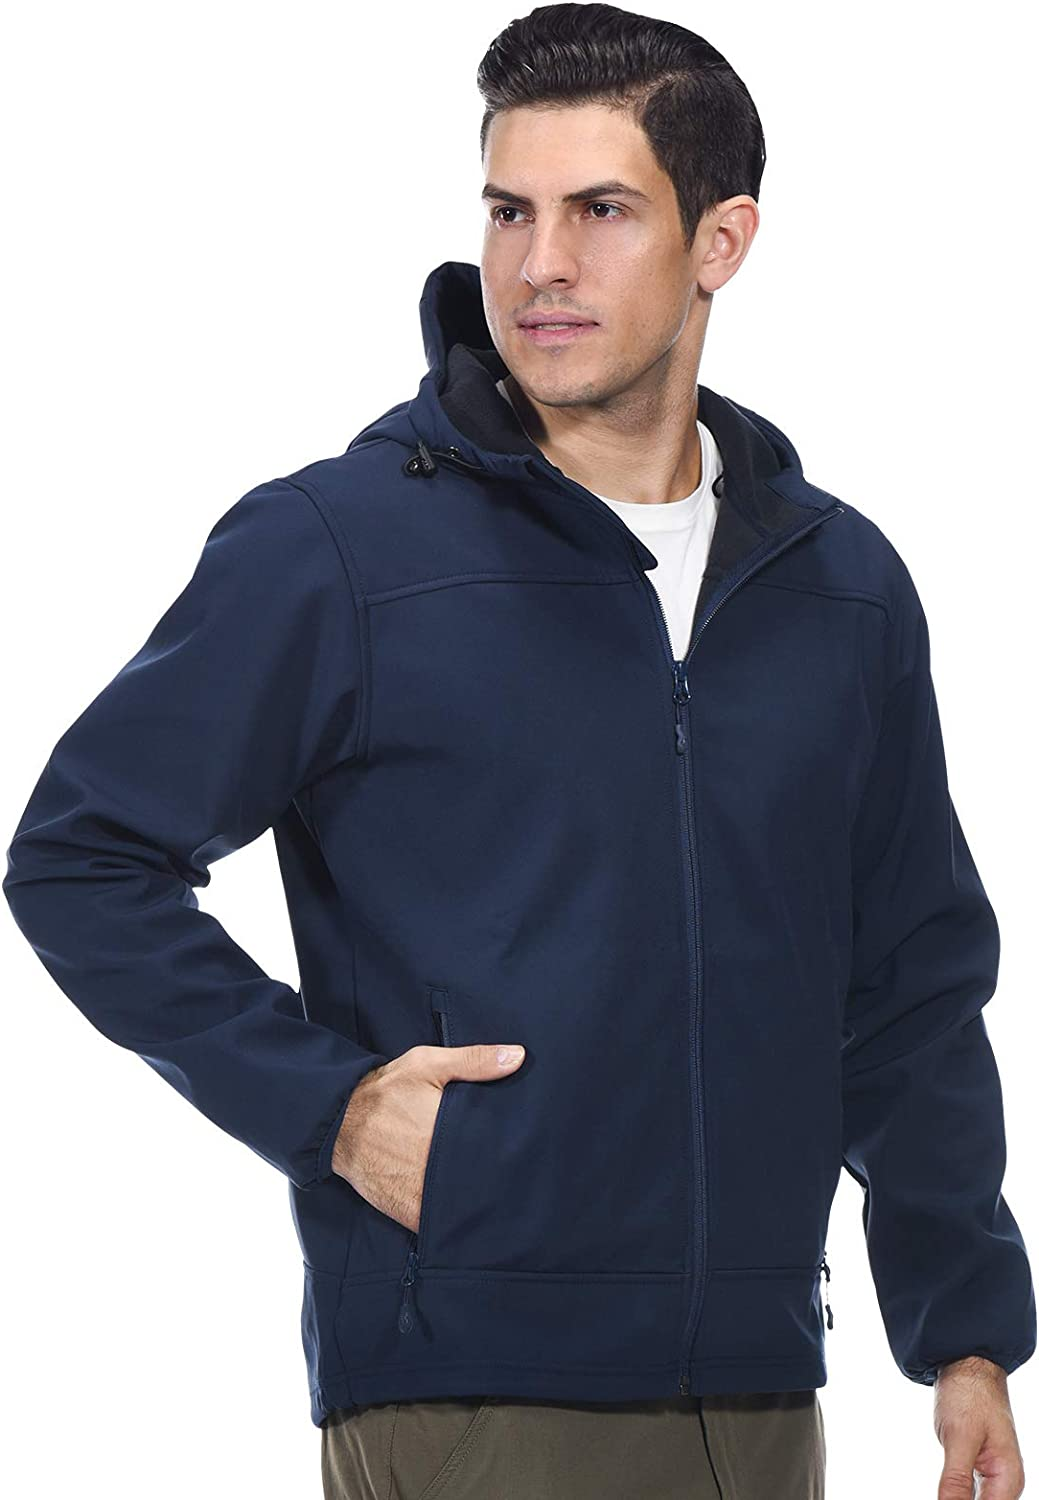 MIER Men's Softshell Jacket Fleece Lined Outdoor Hiking Hooded Full Zip, Water Resistant and Windproof